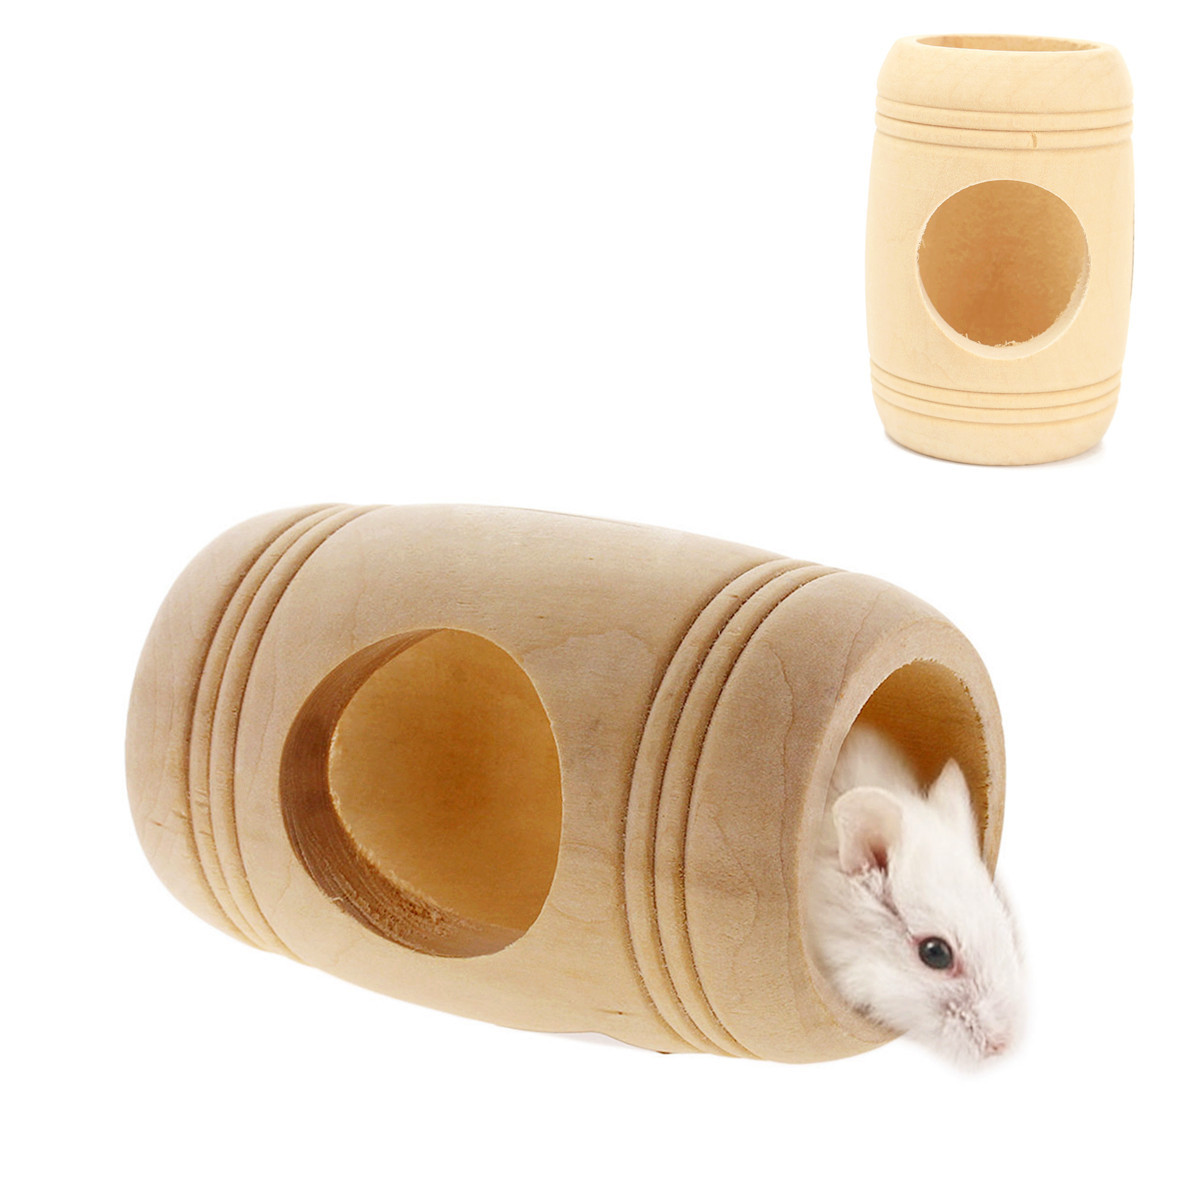 Hot Sale Winter Small Animal Wooden Bed House Cage Molar Wine Cake Shaped Pet Rat Hamster Mouse Wood Toy 11x9cm(China (Mainland))